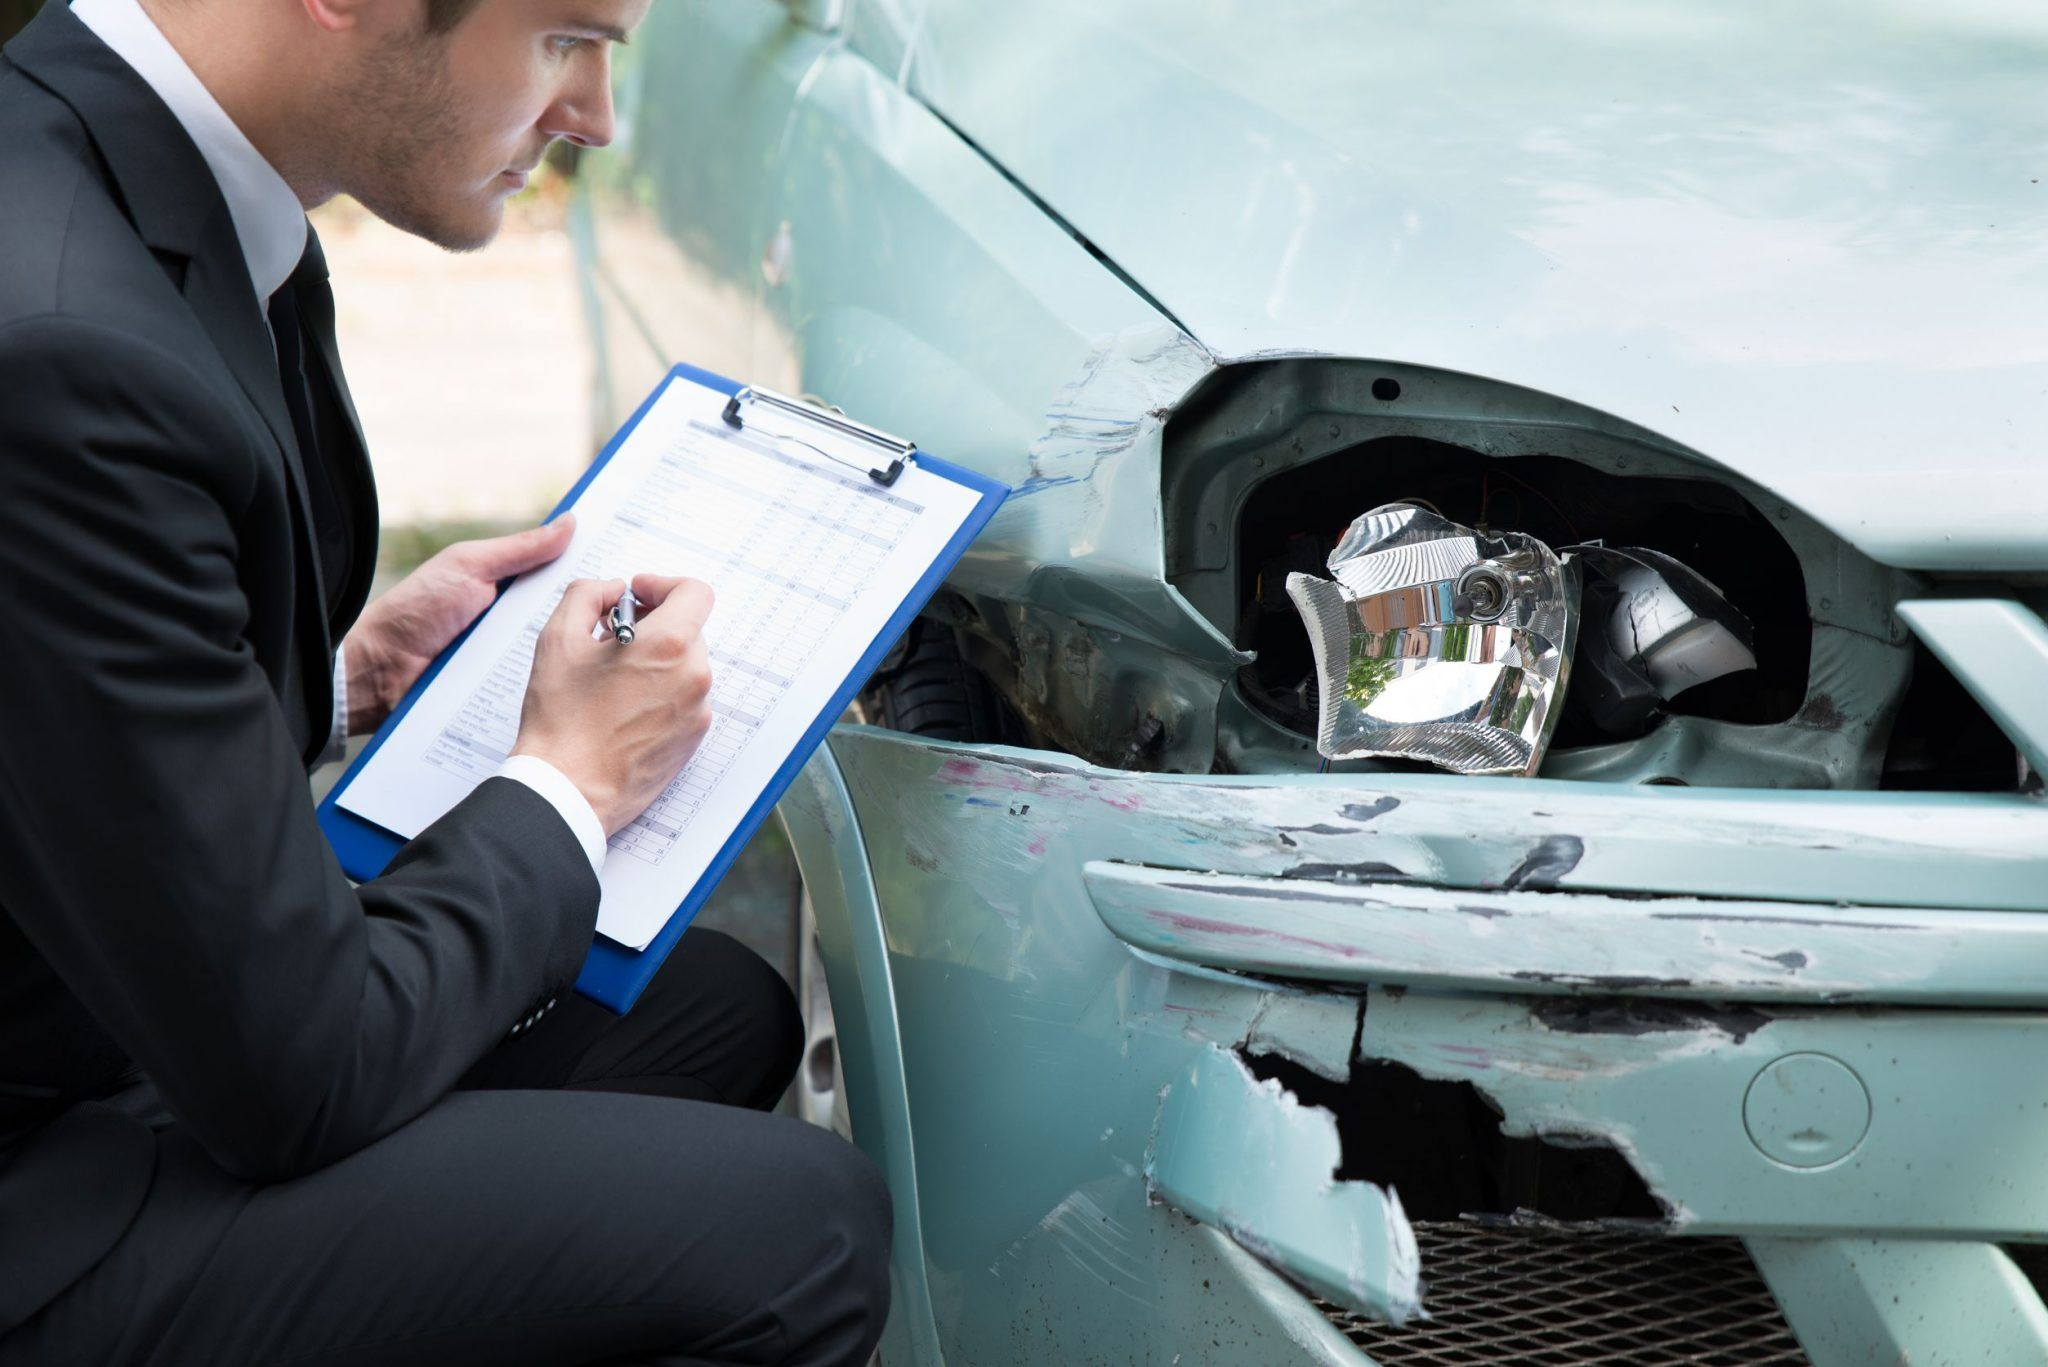 If you were injured in an accident caused by the